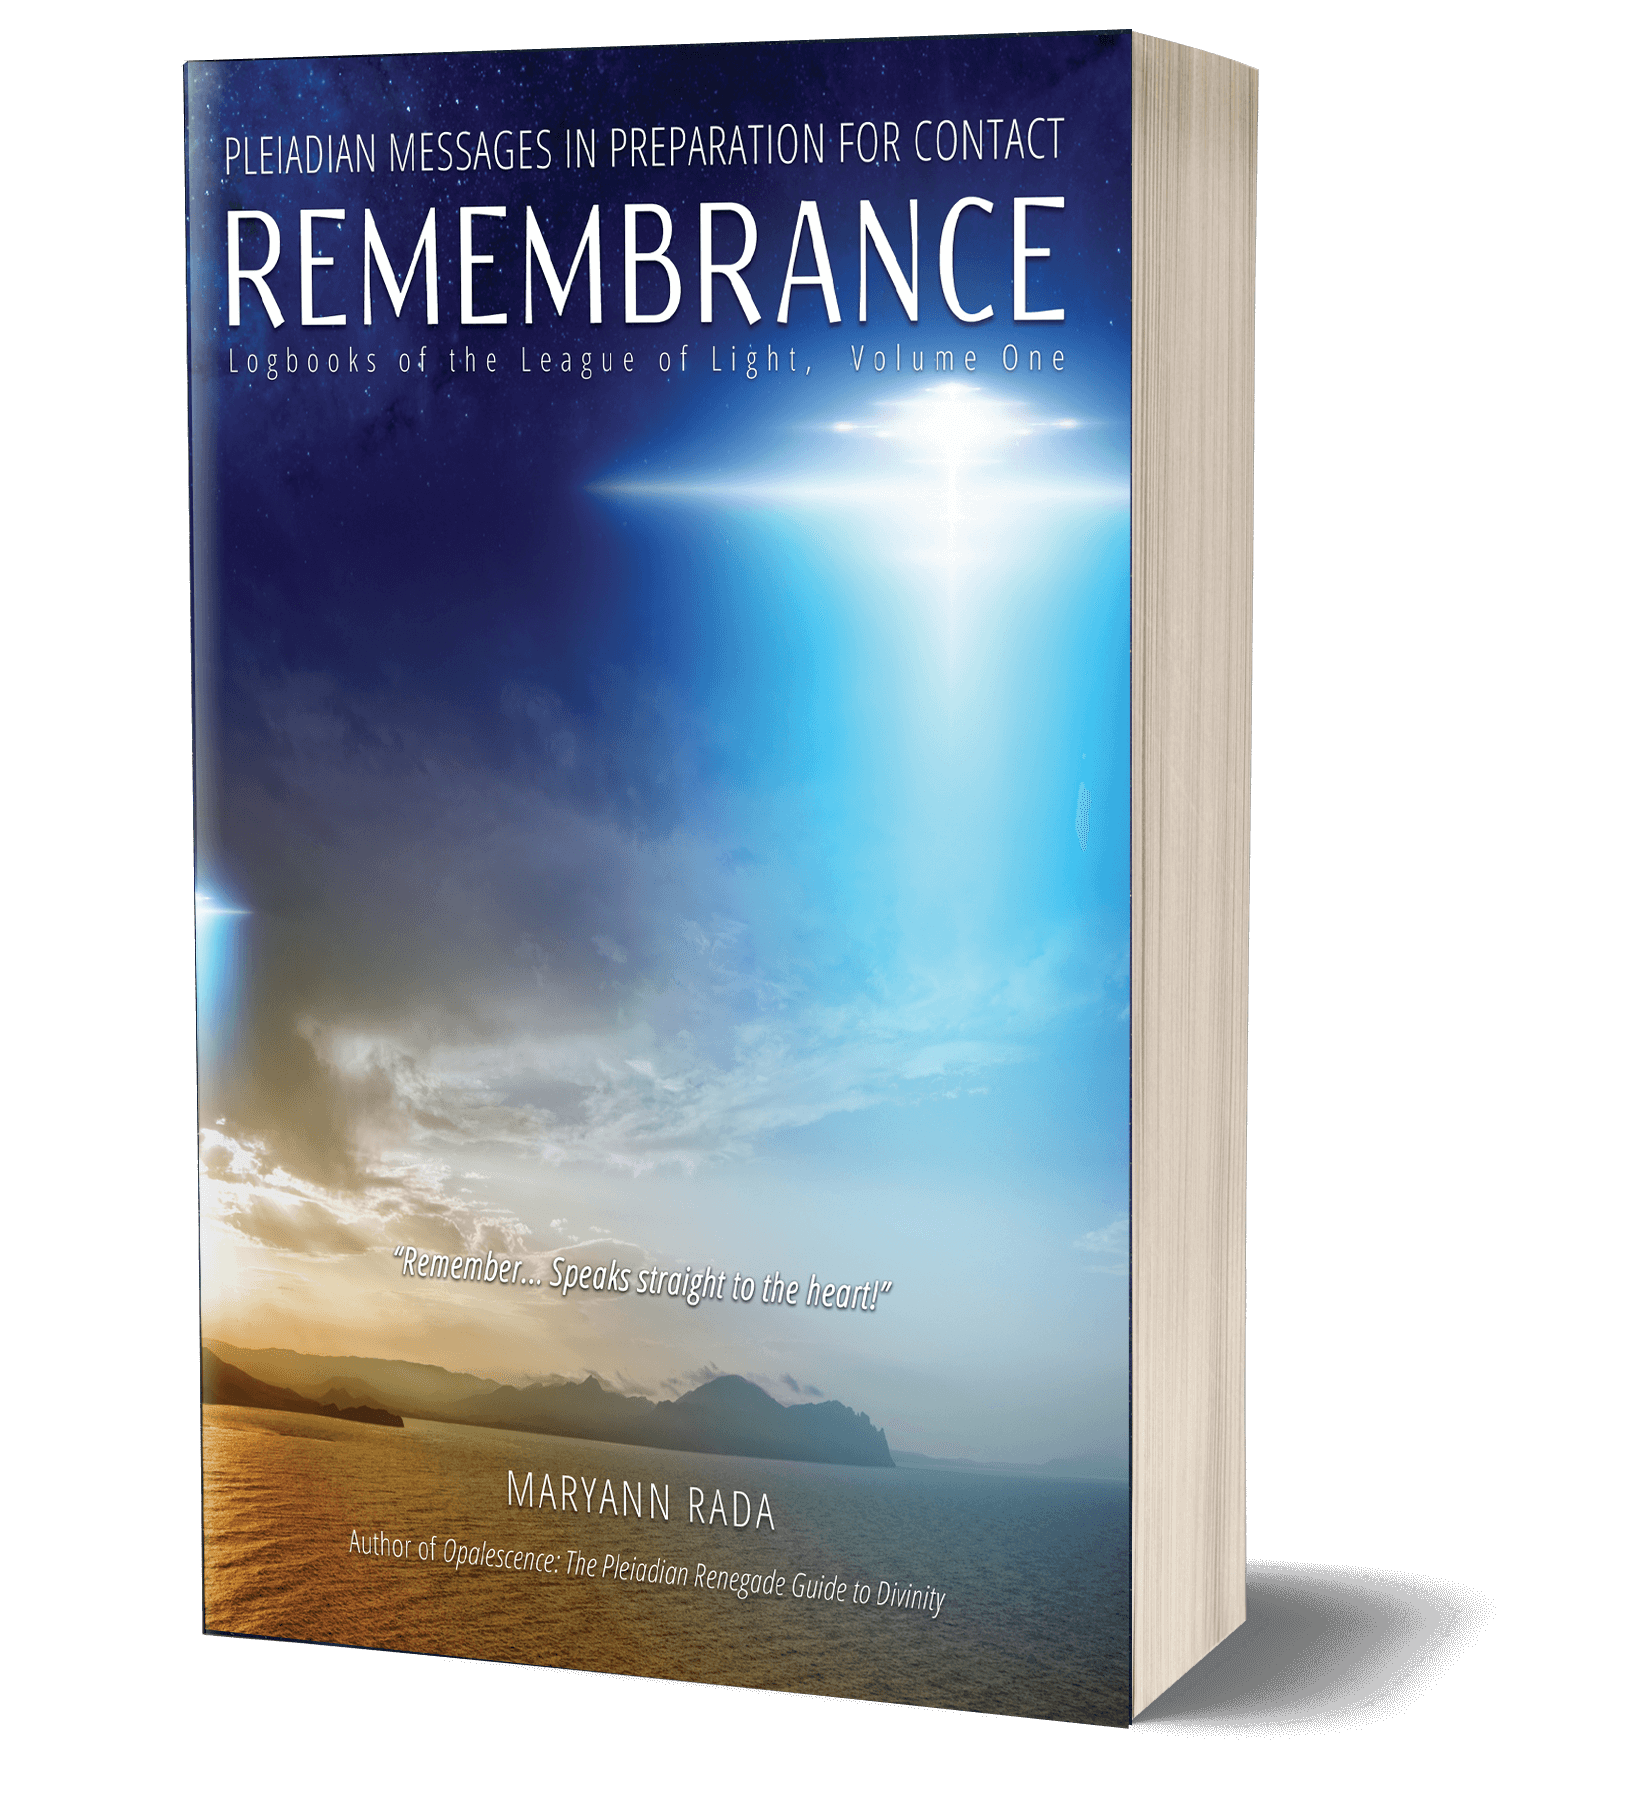 Remembrance: Pleiadian Messages in Preparation for Contact, Pleiadian books by Maryann Rada